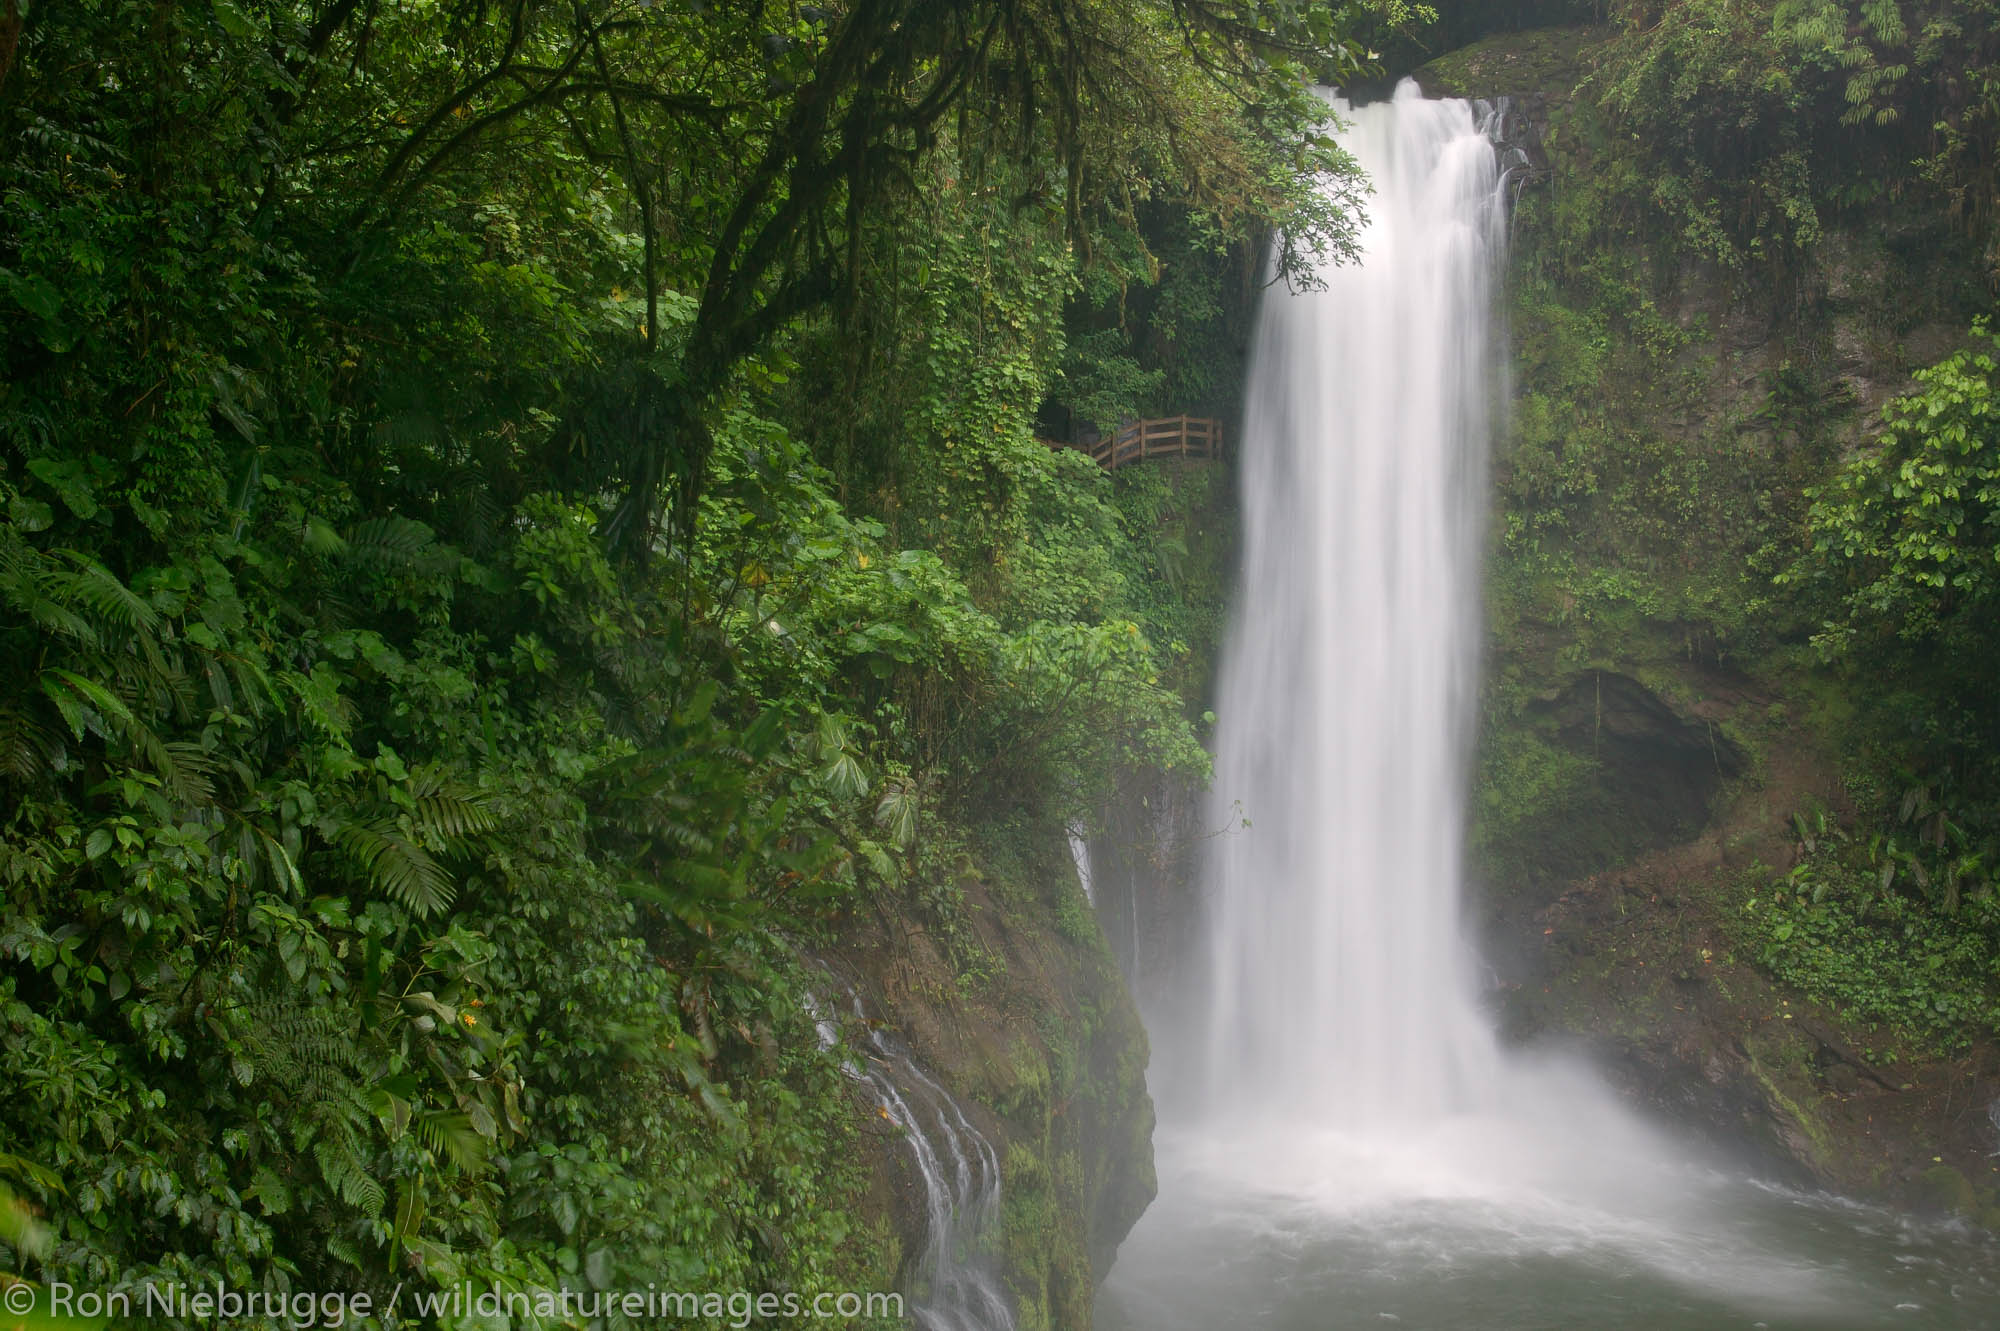 The La Paz river and the Magia Blanca Falls along the trails at the La Paz Waterfall Gardens and Peace Lodge, Costa Rica.